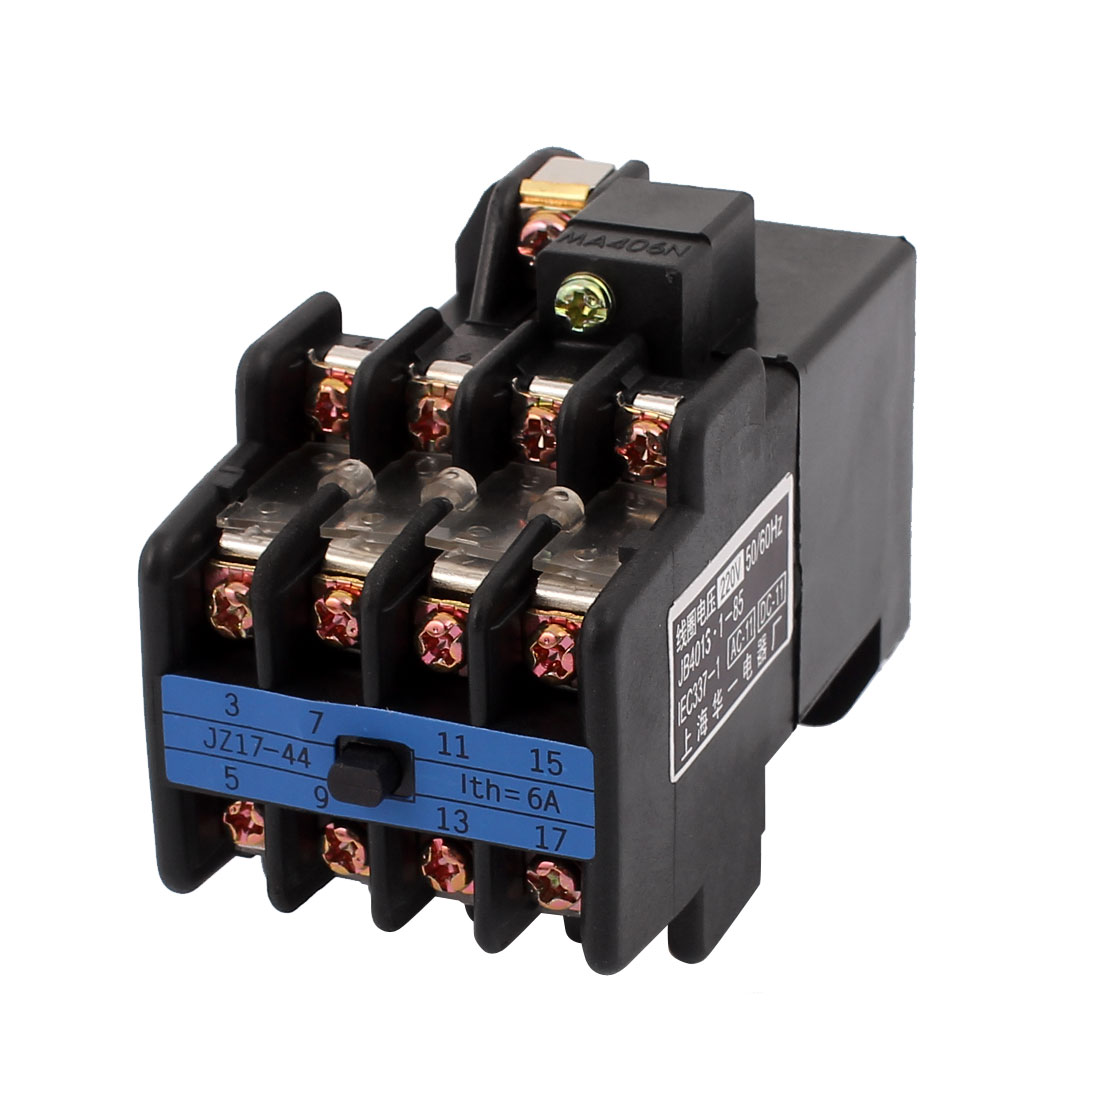 AC 220V Coil Voltage Ith 6A 4NO + 4NC Auxiliary Contactor Relay JZ17-44